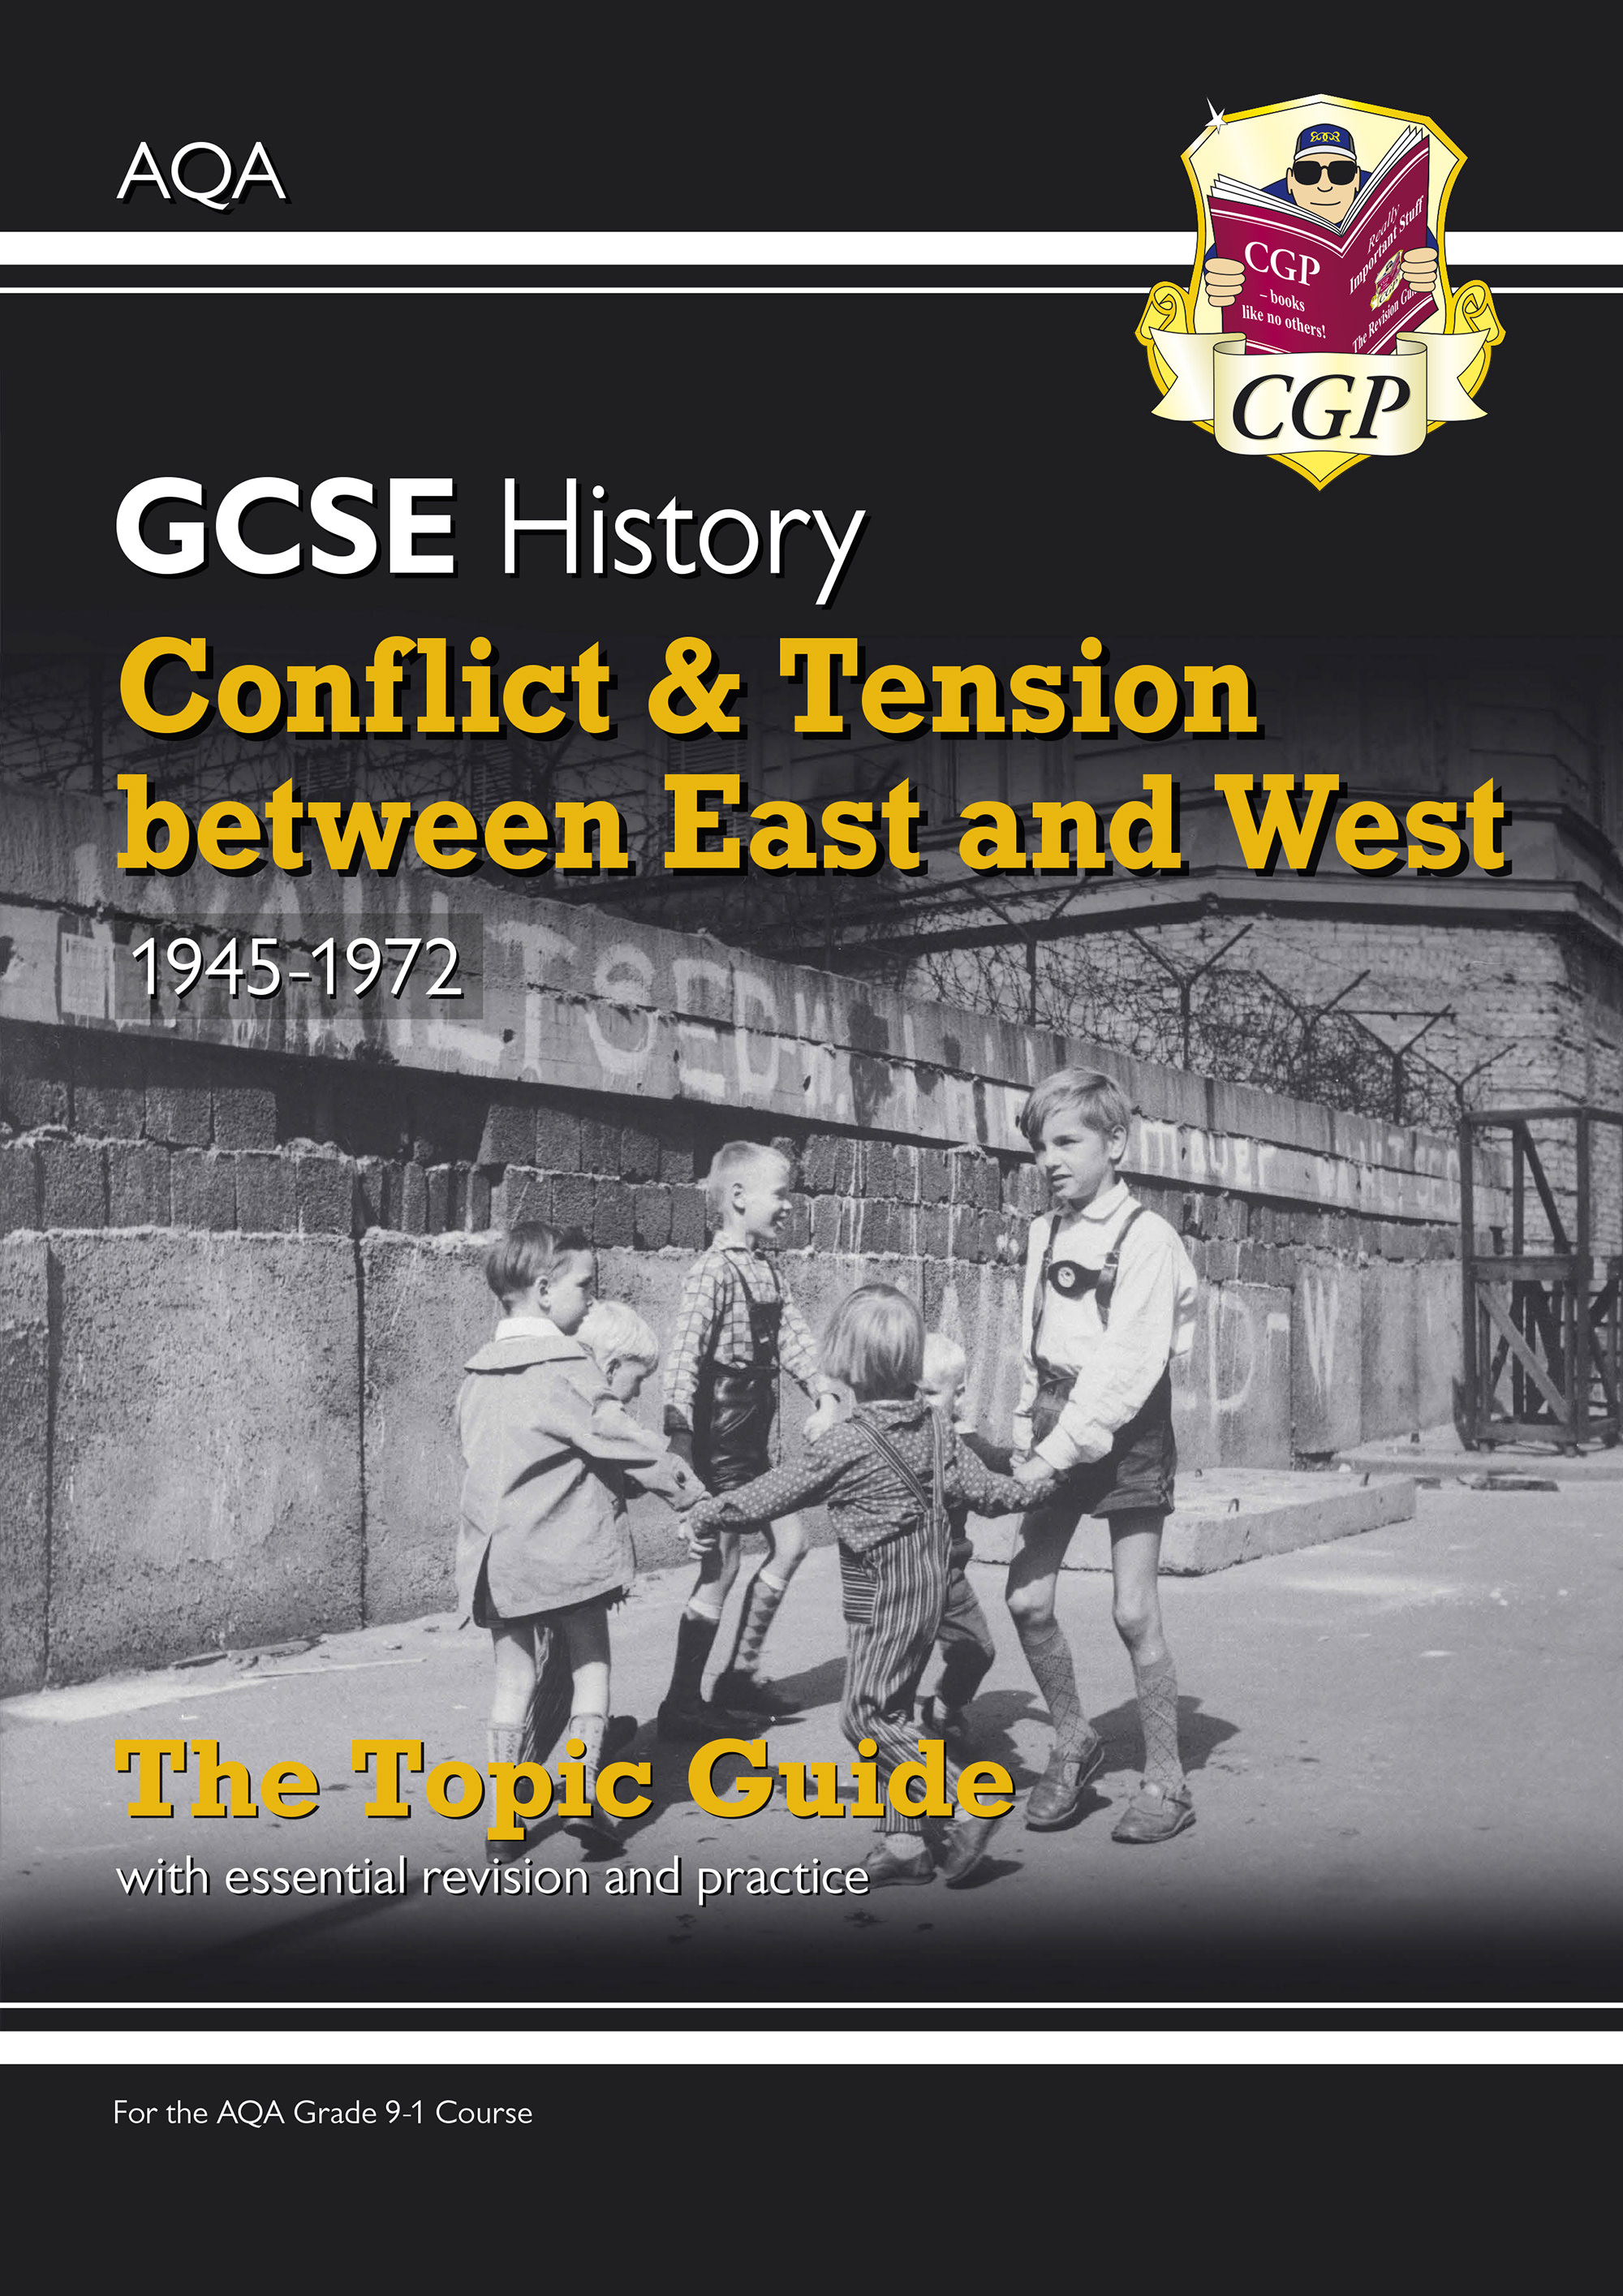 HAEWO41DK - New Grade 9-1 GCSE History AQA Topic Guide - Conflict and Tension Between East and West,